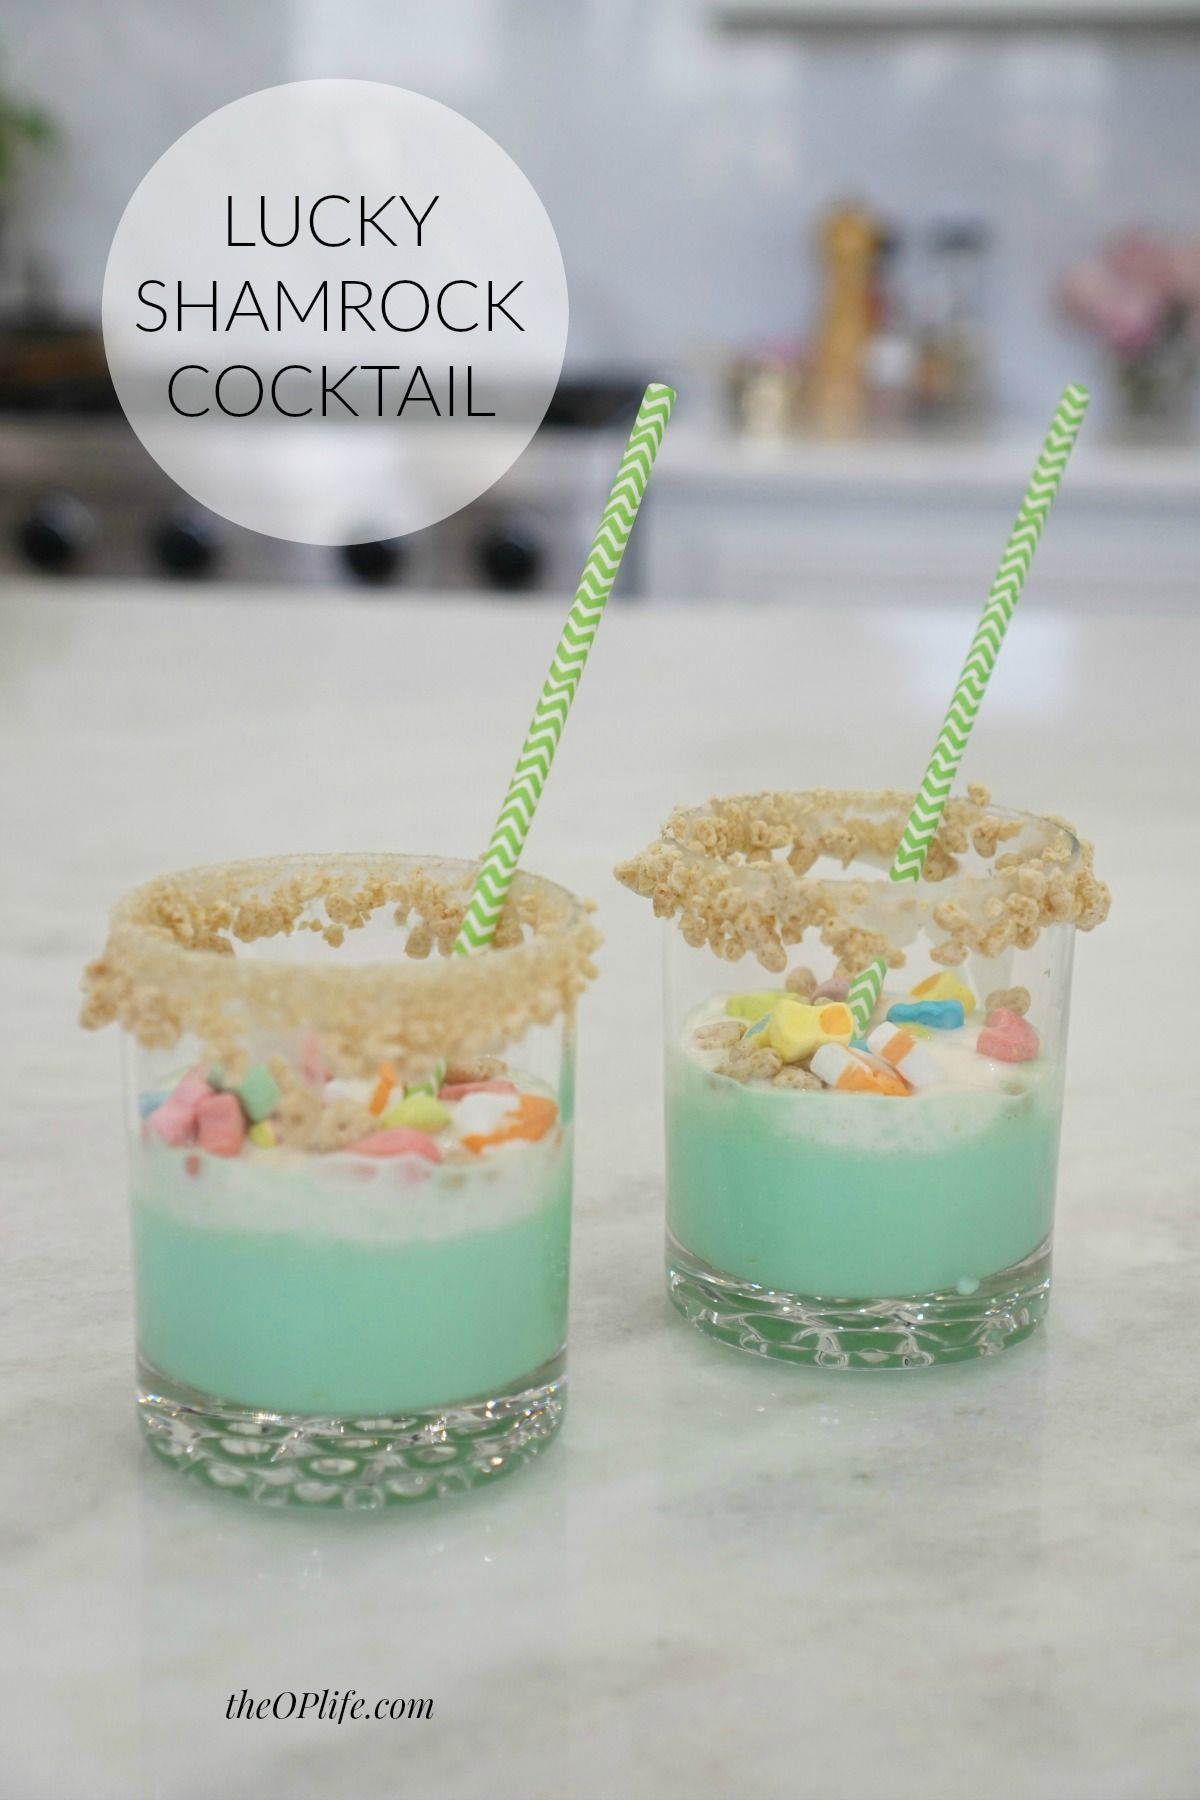 With Lucky Charms.  It's Magically Delicious!  www.theoplife.com